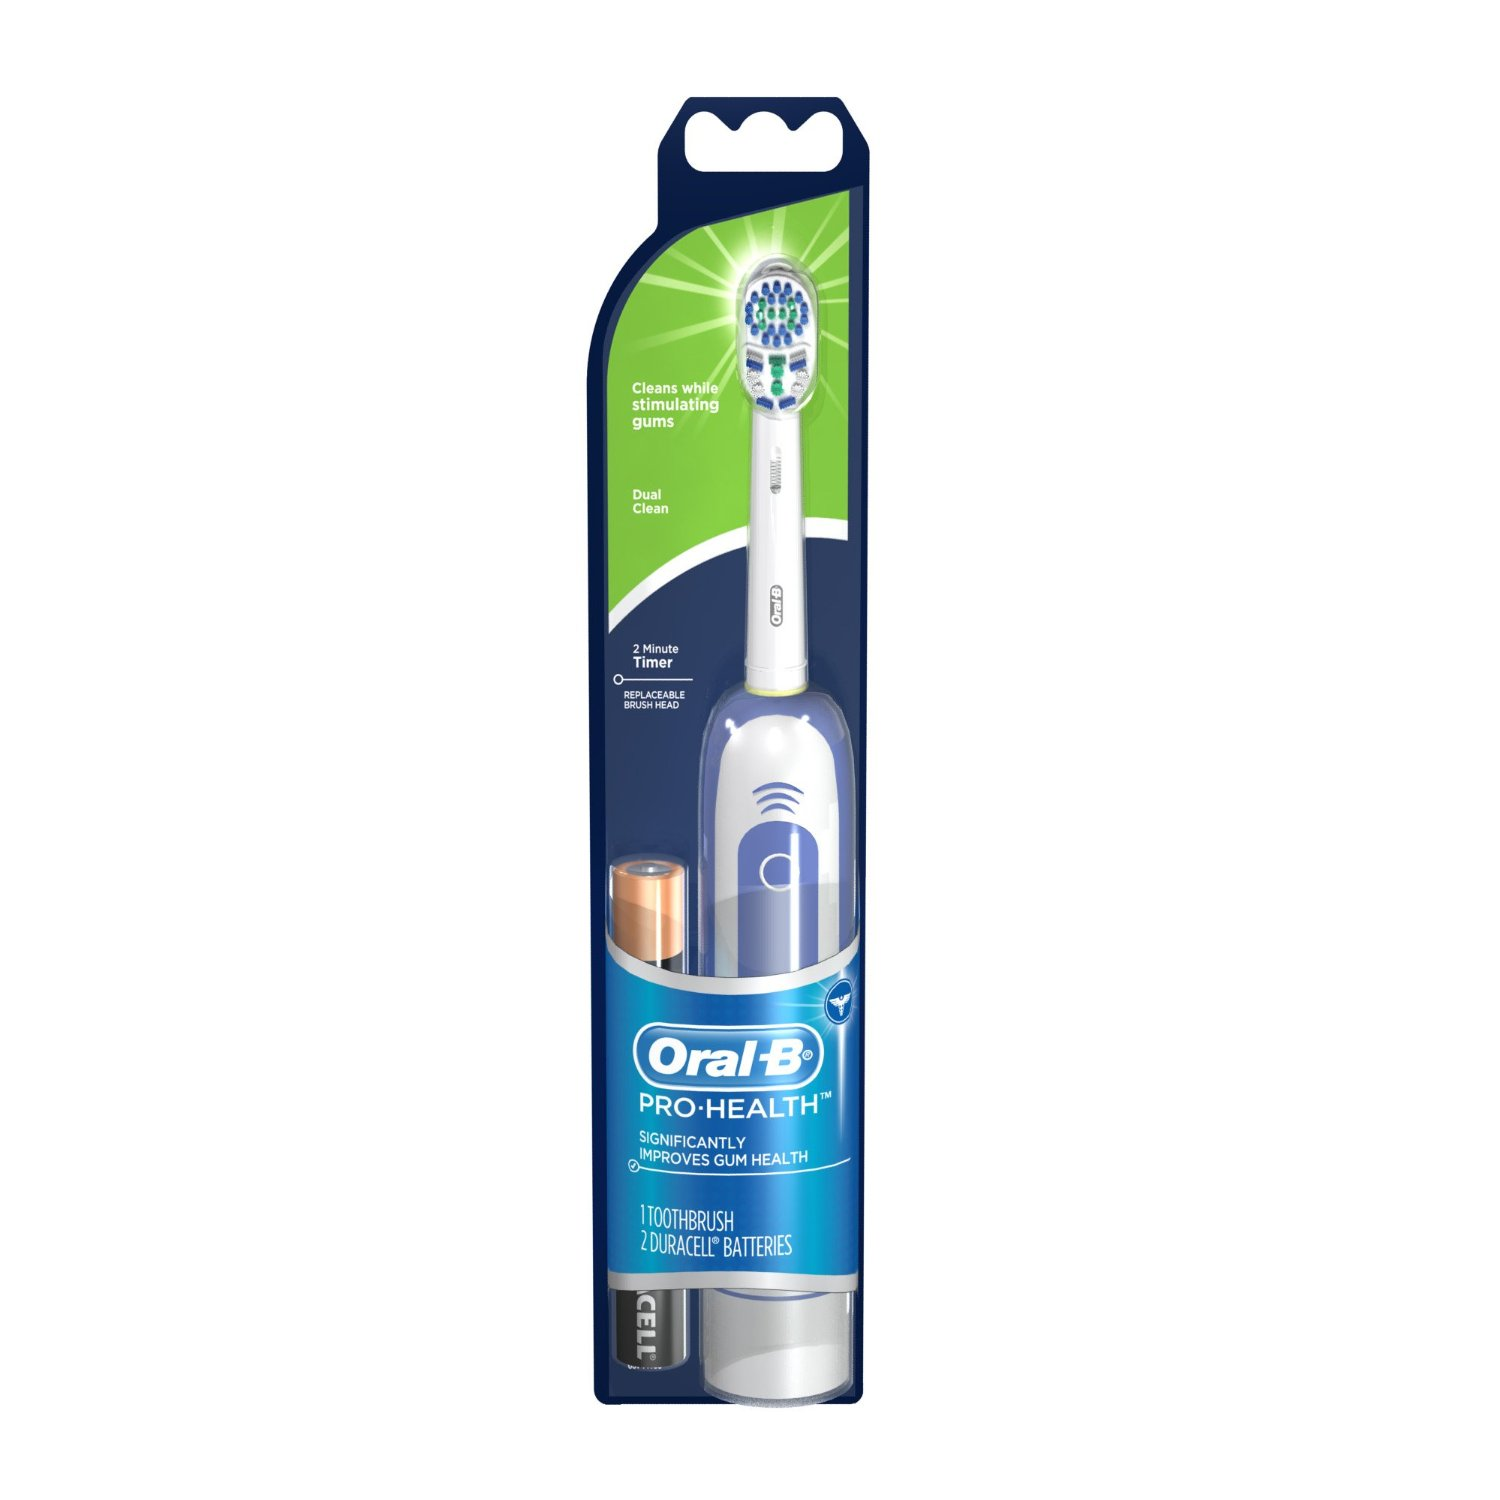 The Oral-B PRO provides a clinically proven superior clean vs. a regular manual toothbrush: Remove % more plaque along the gum line than a regular manual toothbrush.